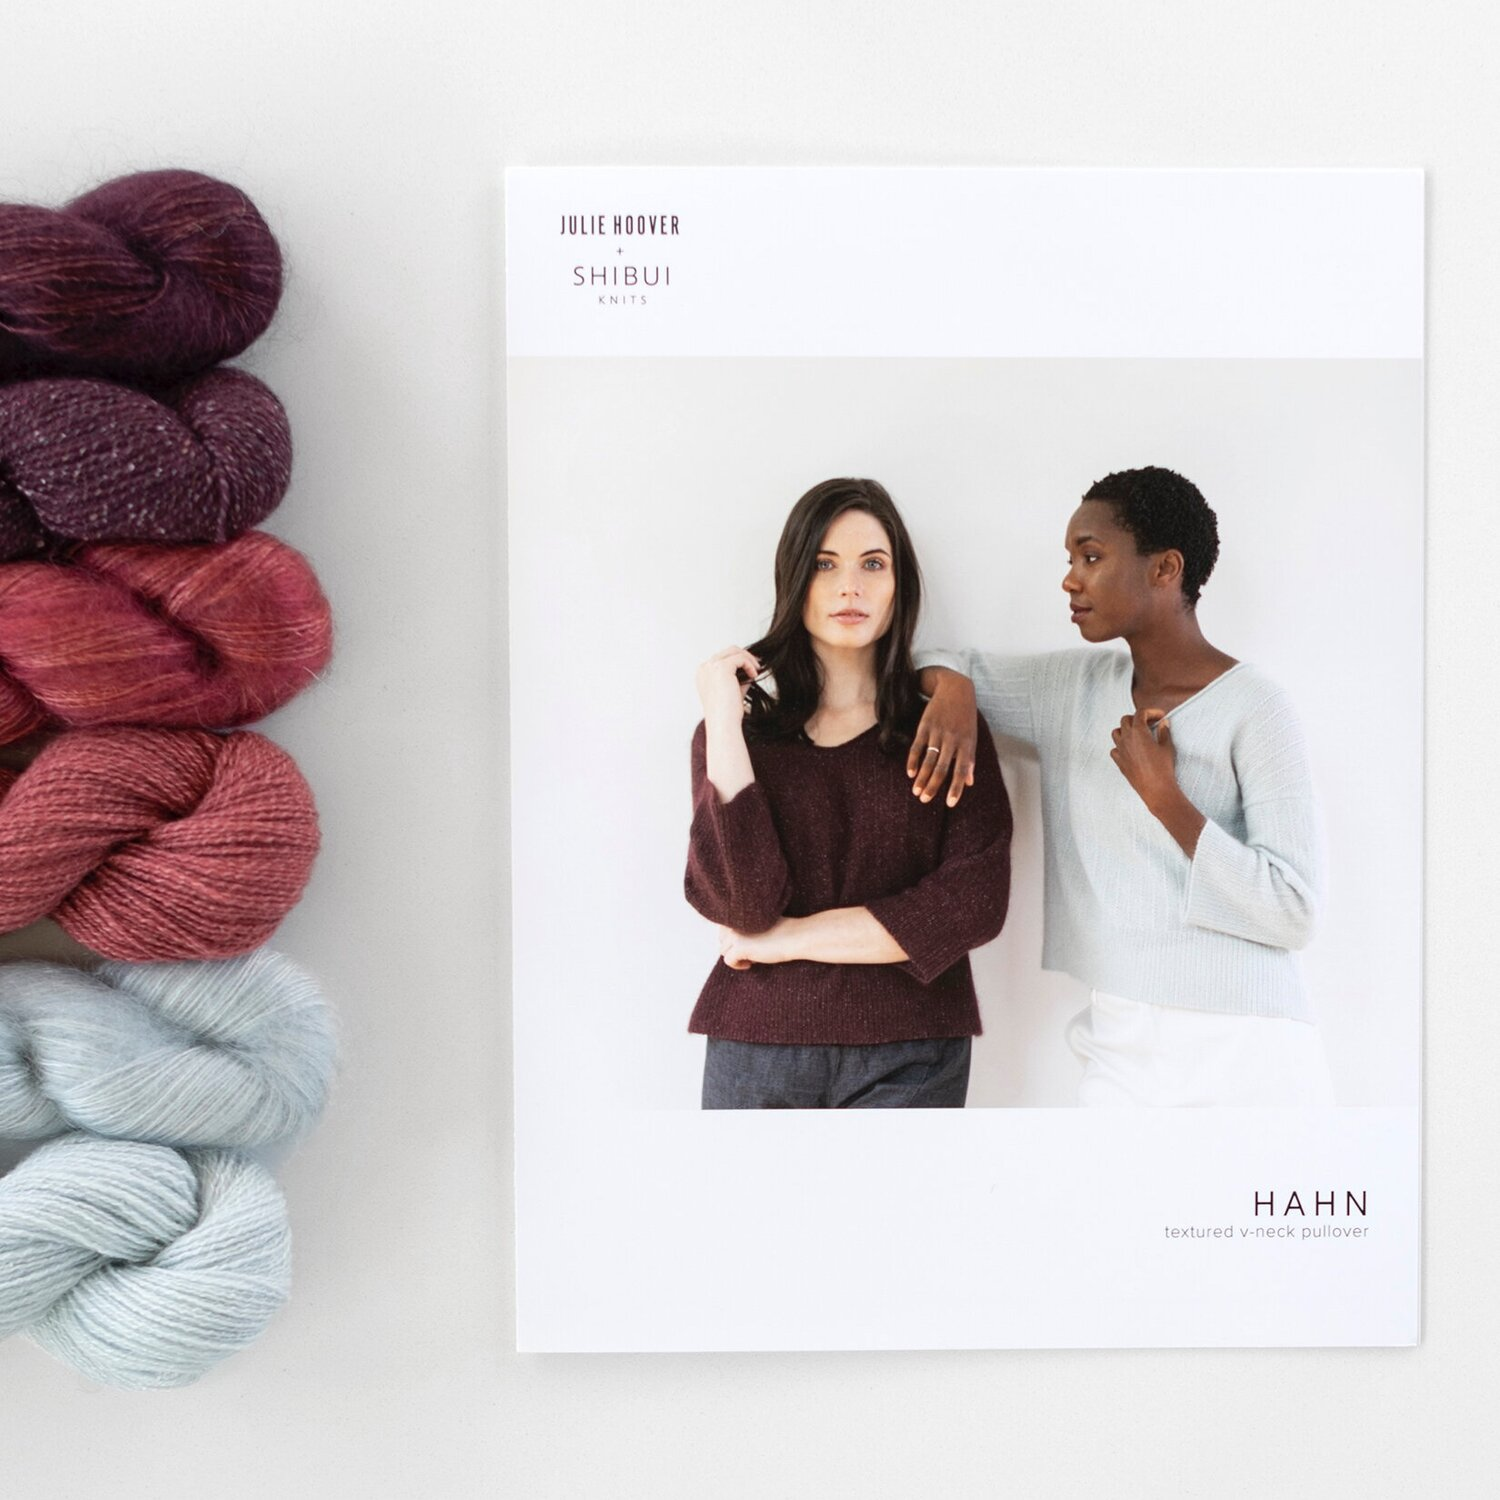 Red, purple, and gray yarns